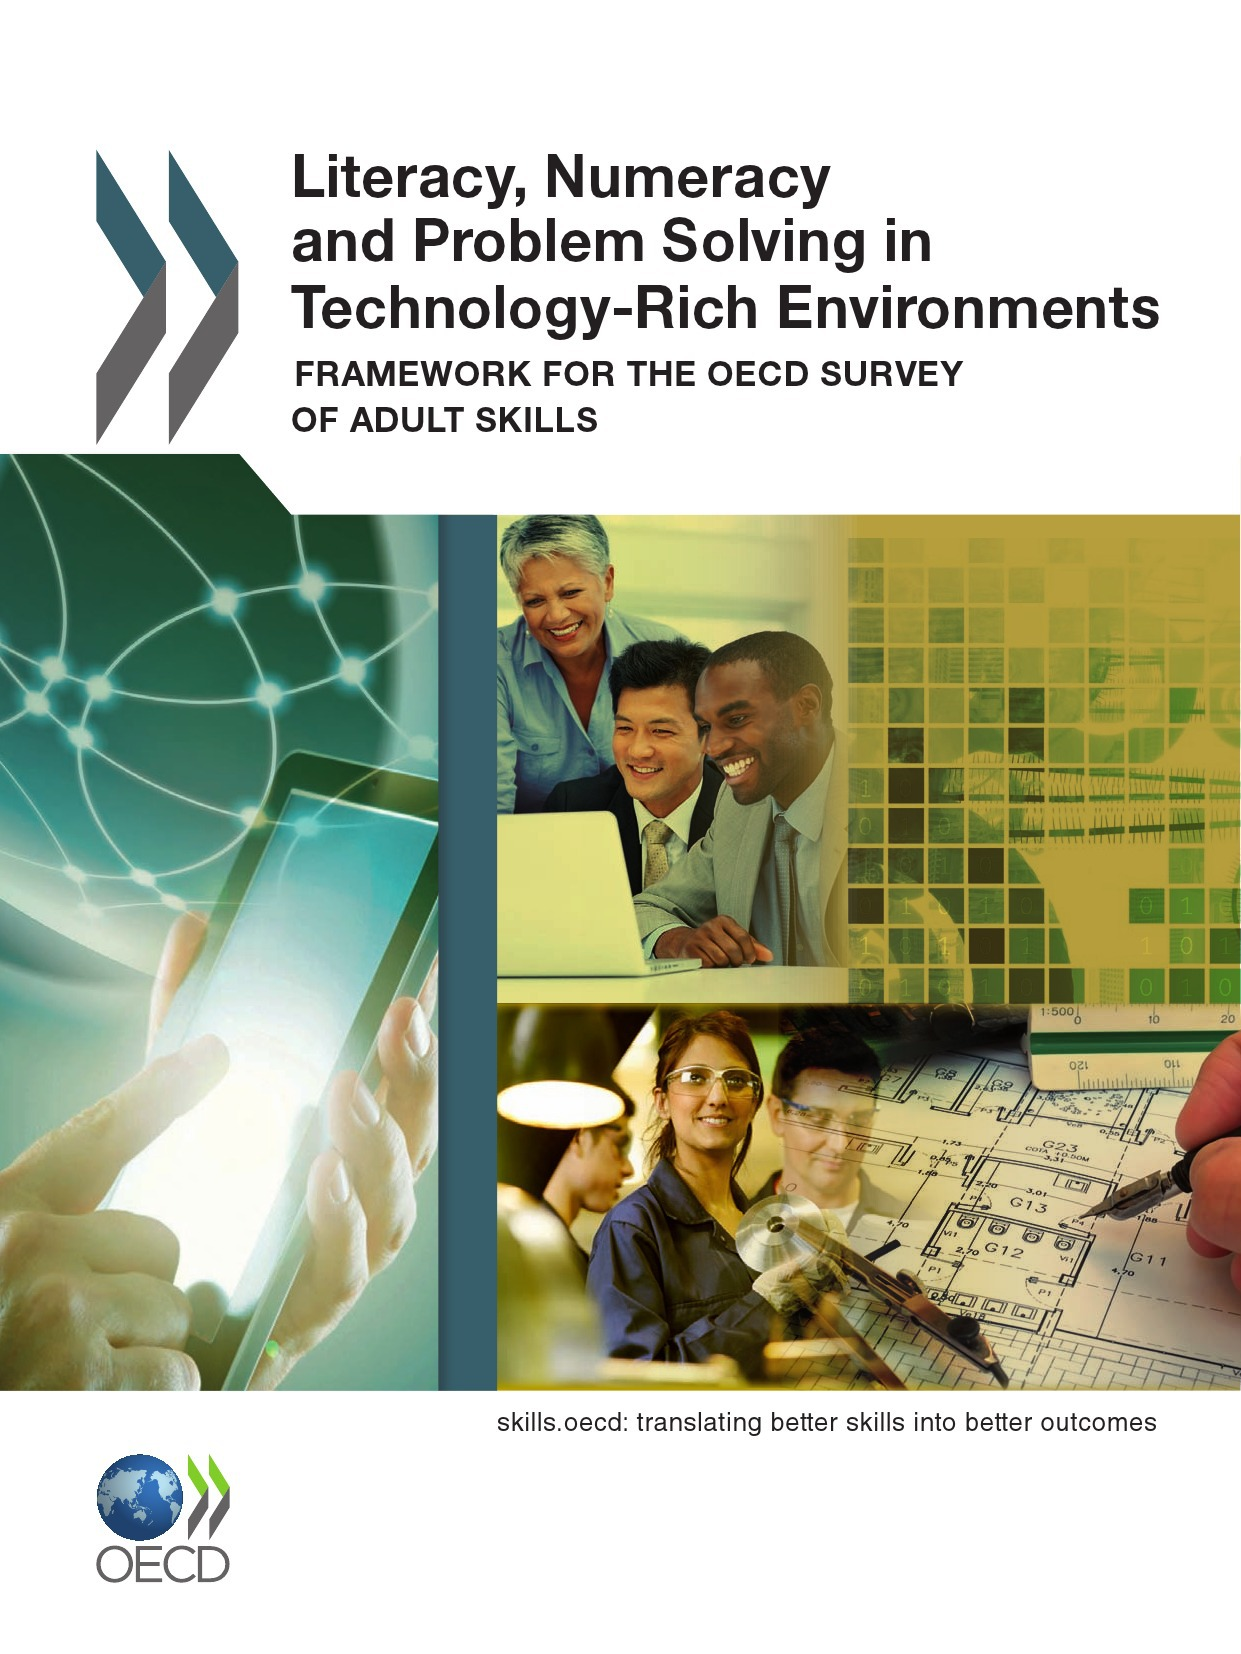 Literacy, Numeracy and Problem Solving in Technology-Rich Environments